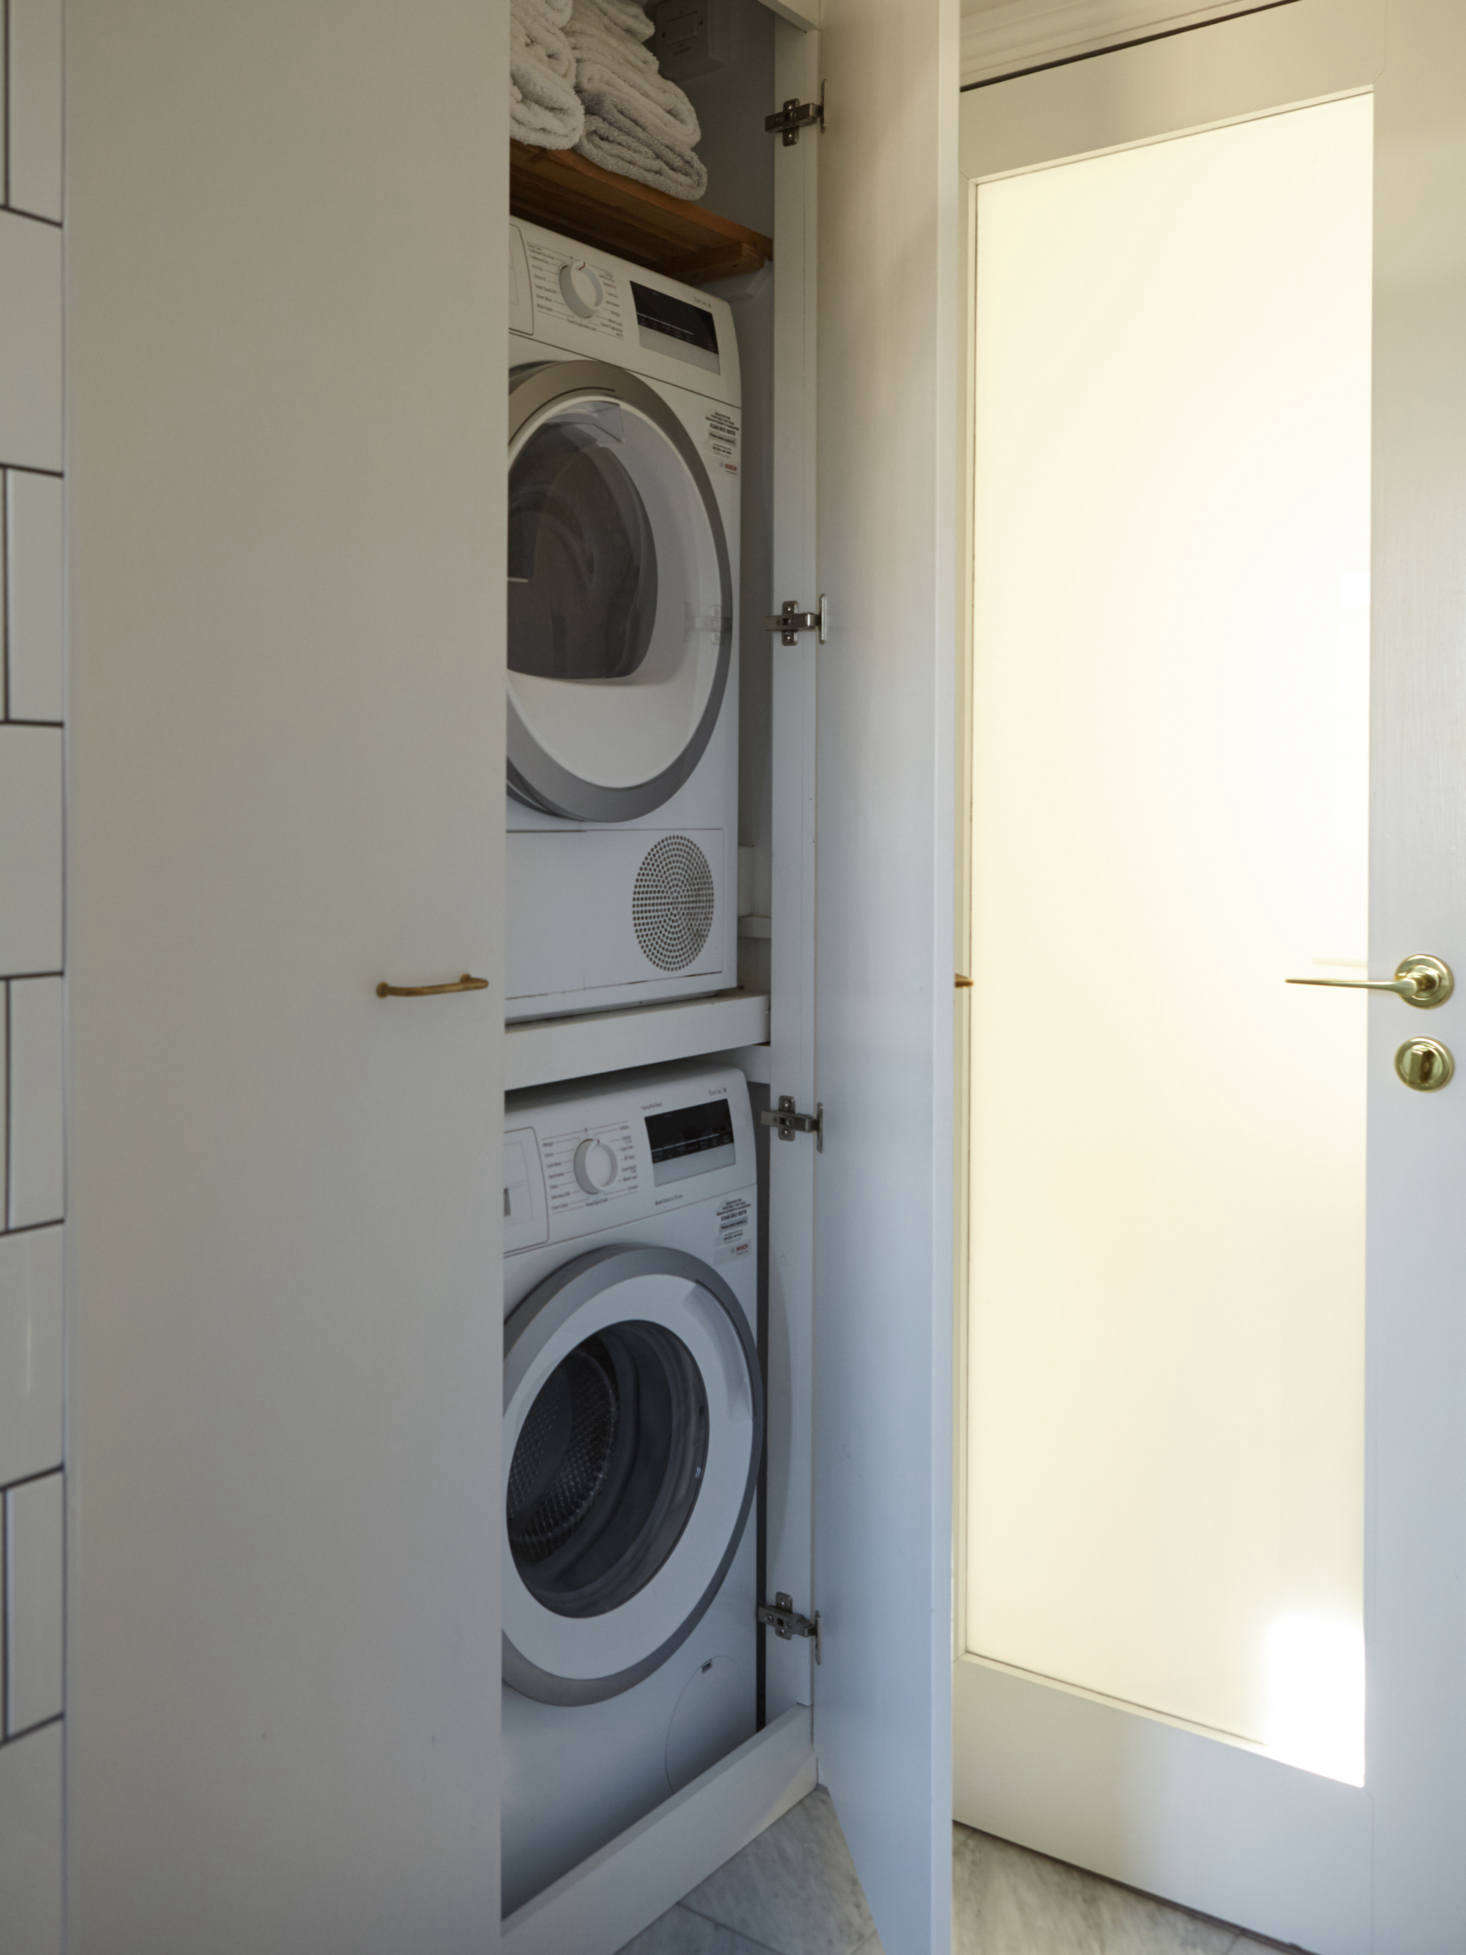 Compact London living means integrating the washer/dryer into the bath as well.Photograph by Richard Round-Turner fromA Star Is Born: A Rehabbed London Maisonette from a Newly Minted Designer, High/Low Secrets Included.